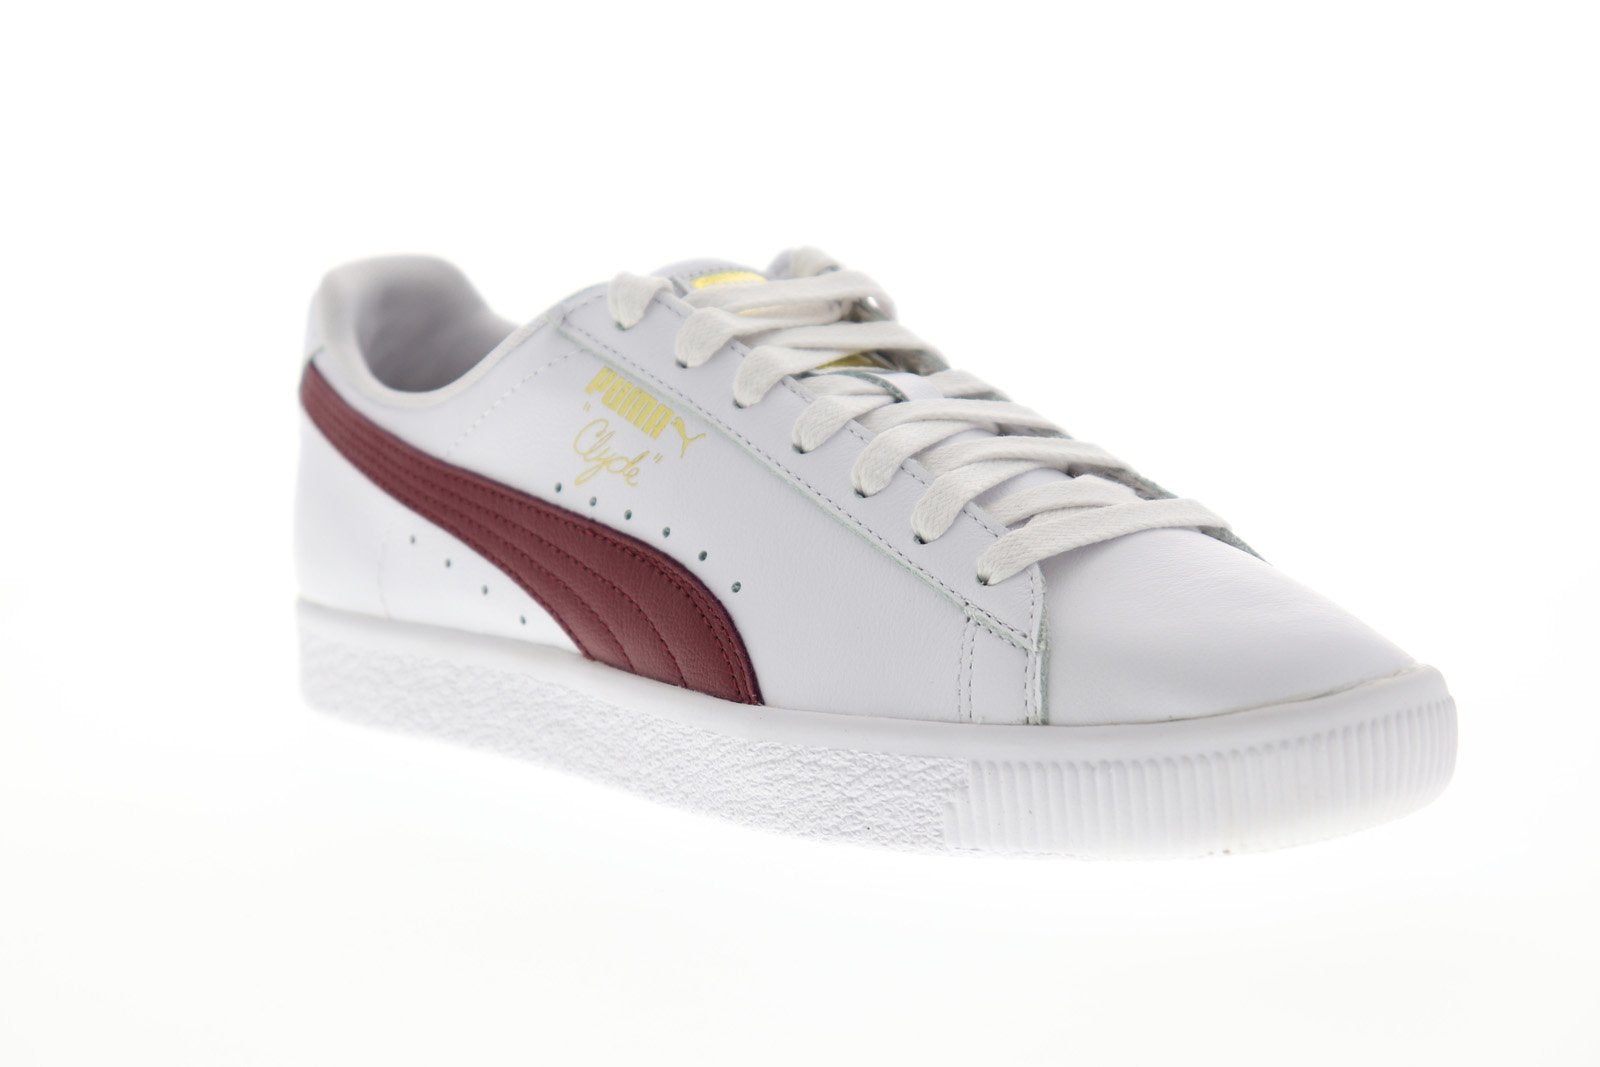 the best attitude 8310c 73499 Puma Clyde Core L Foil Mens White Leather Low Top Lace Up Sneakers Shoes